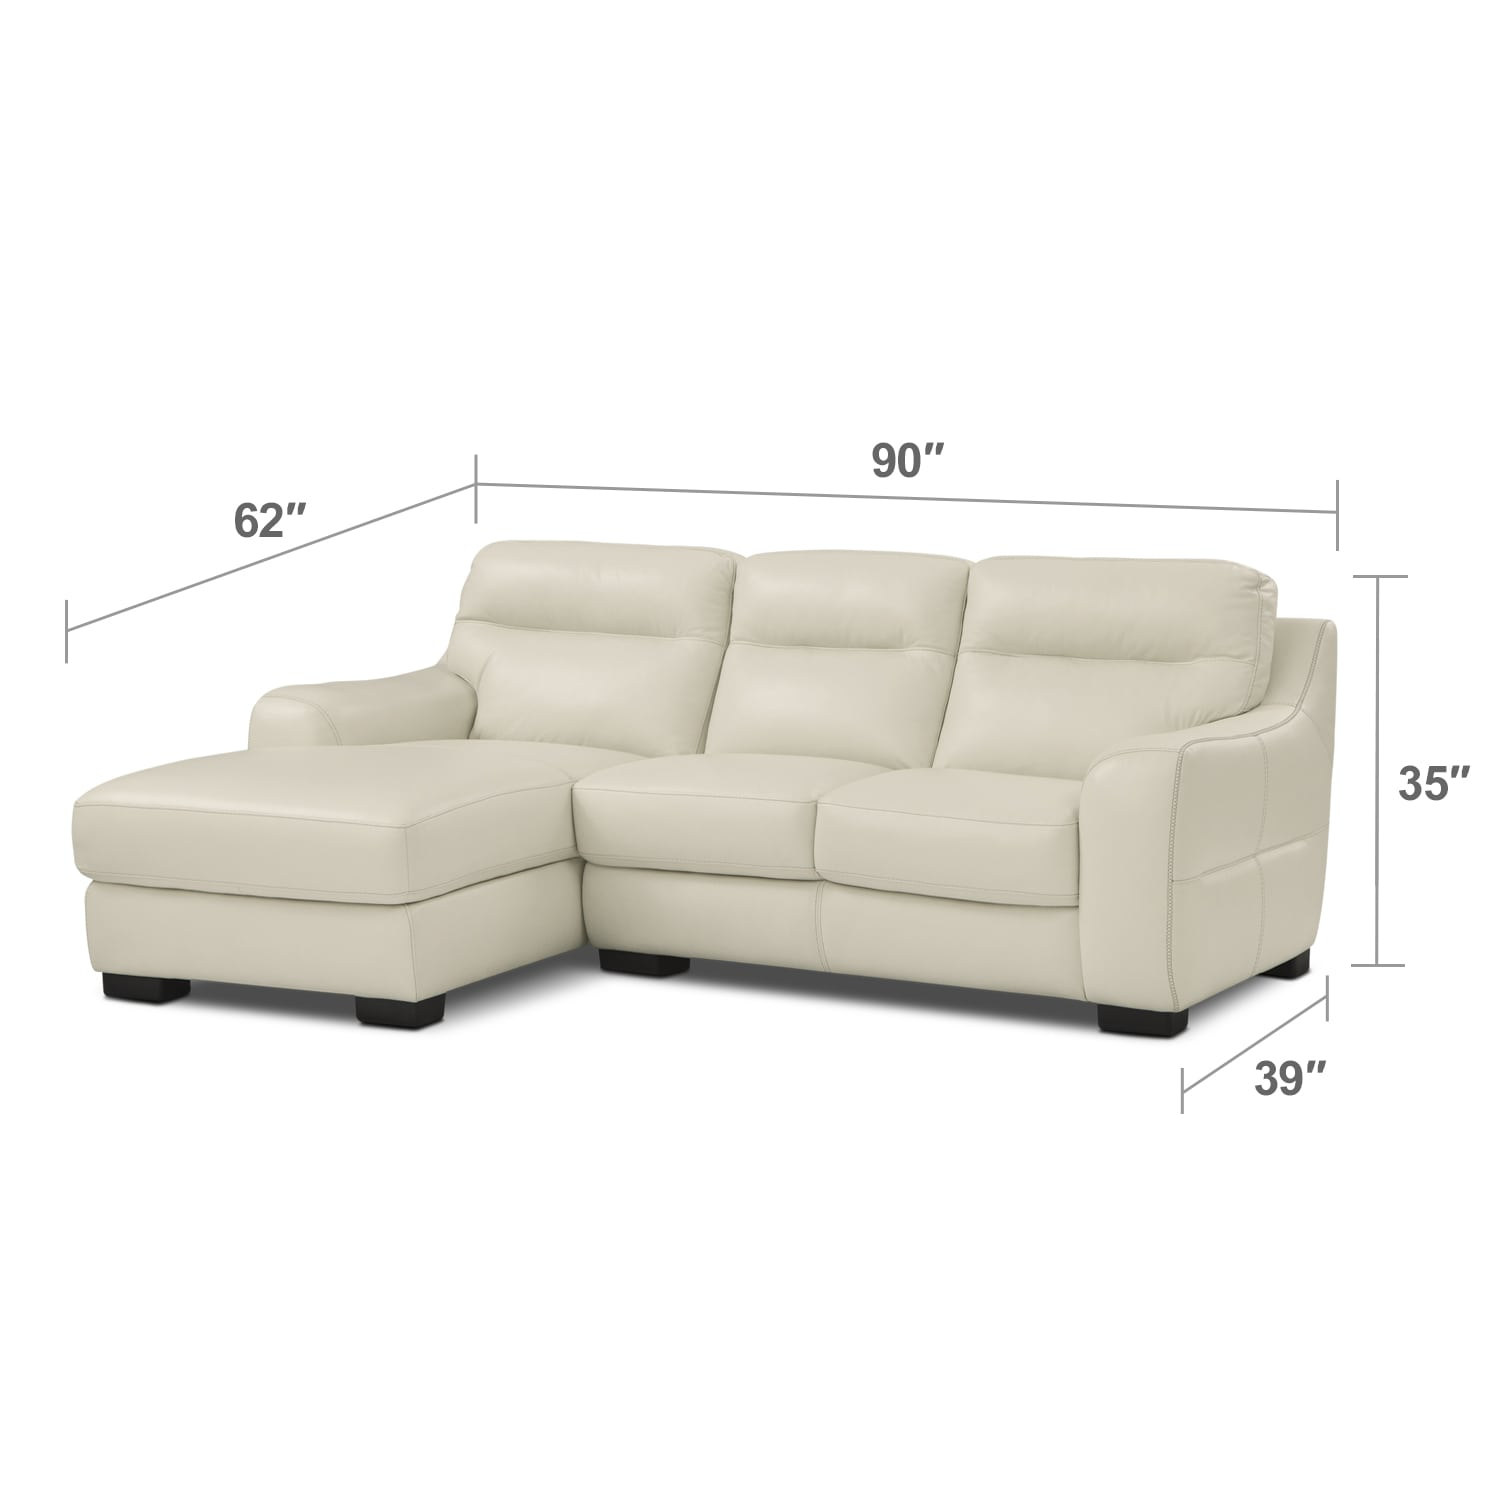 Living Room Furniture - Rocco Snow 2 Pc. Left-Facing Chaise Sectional